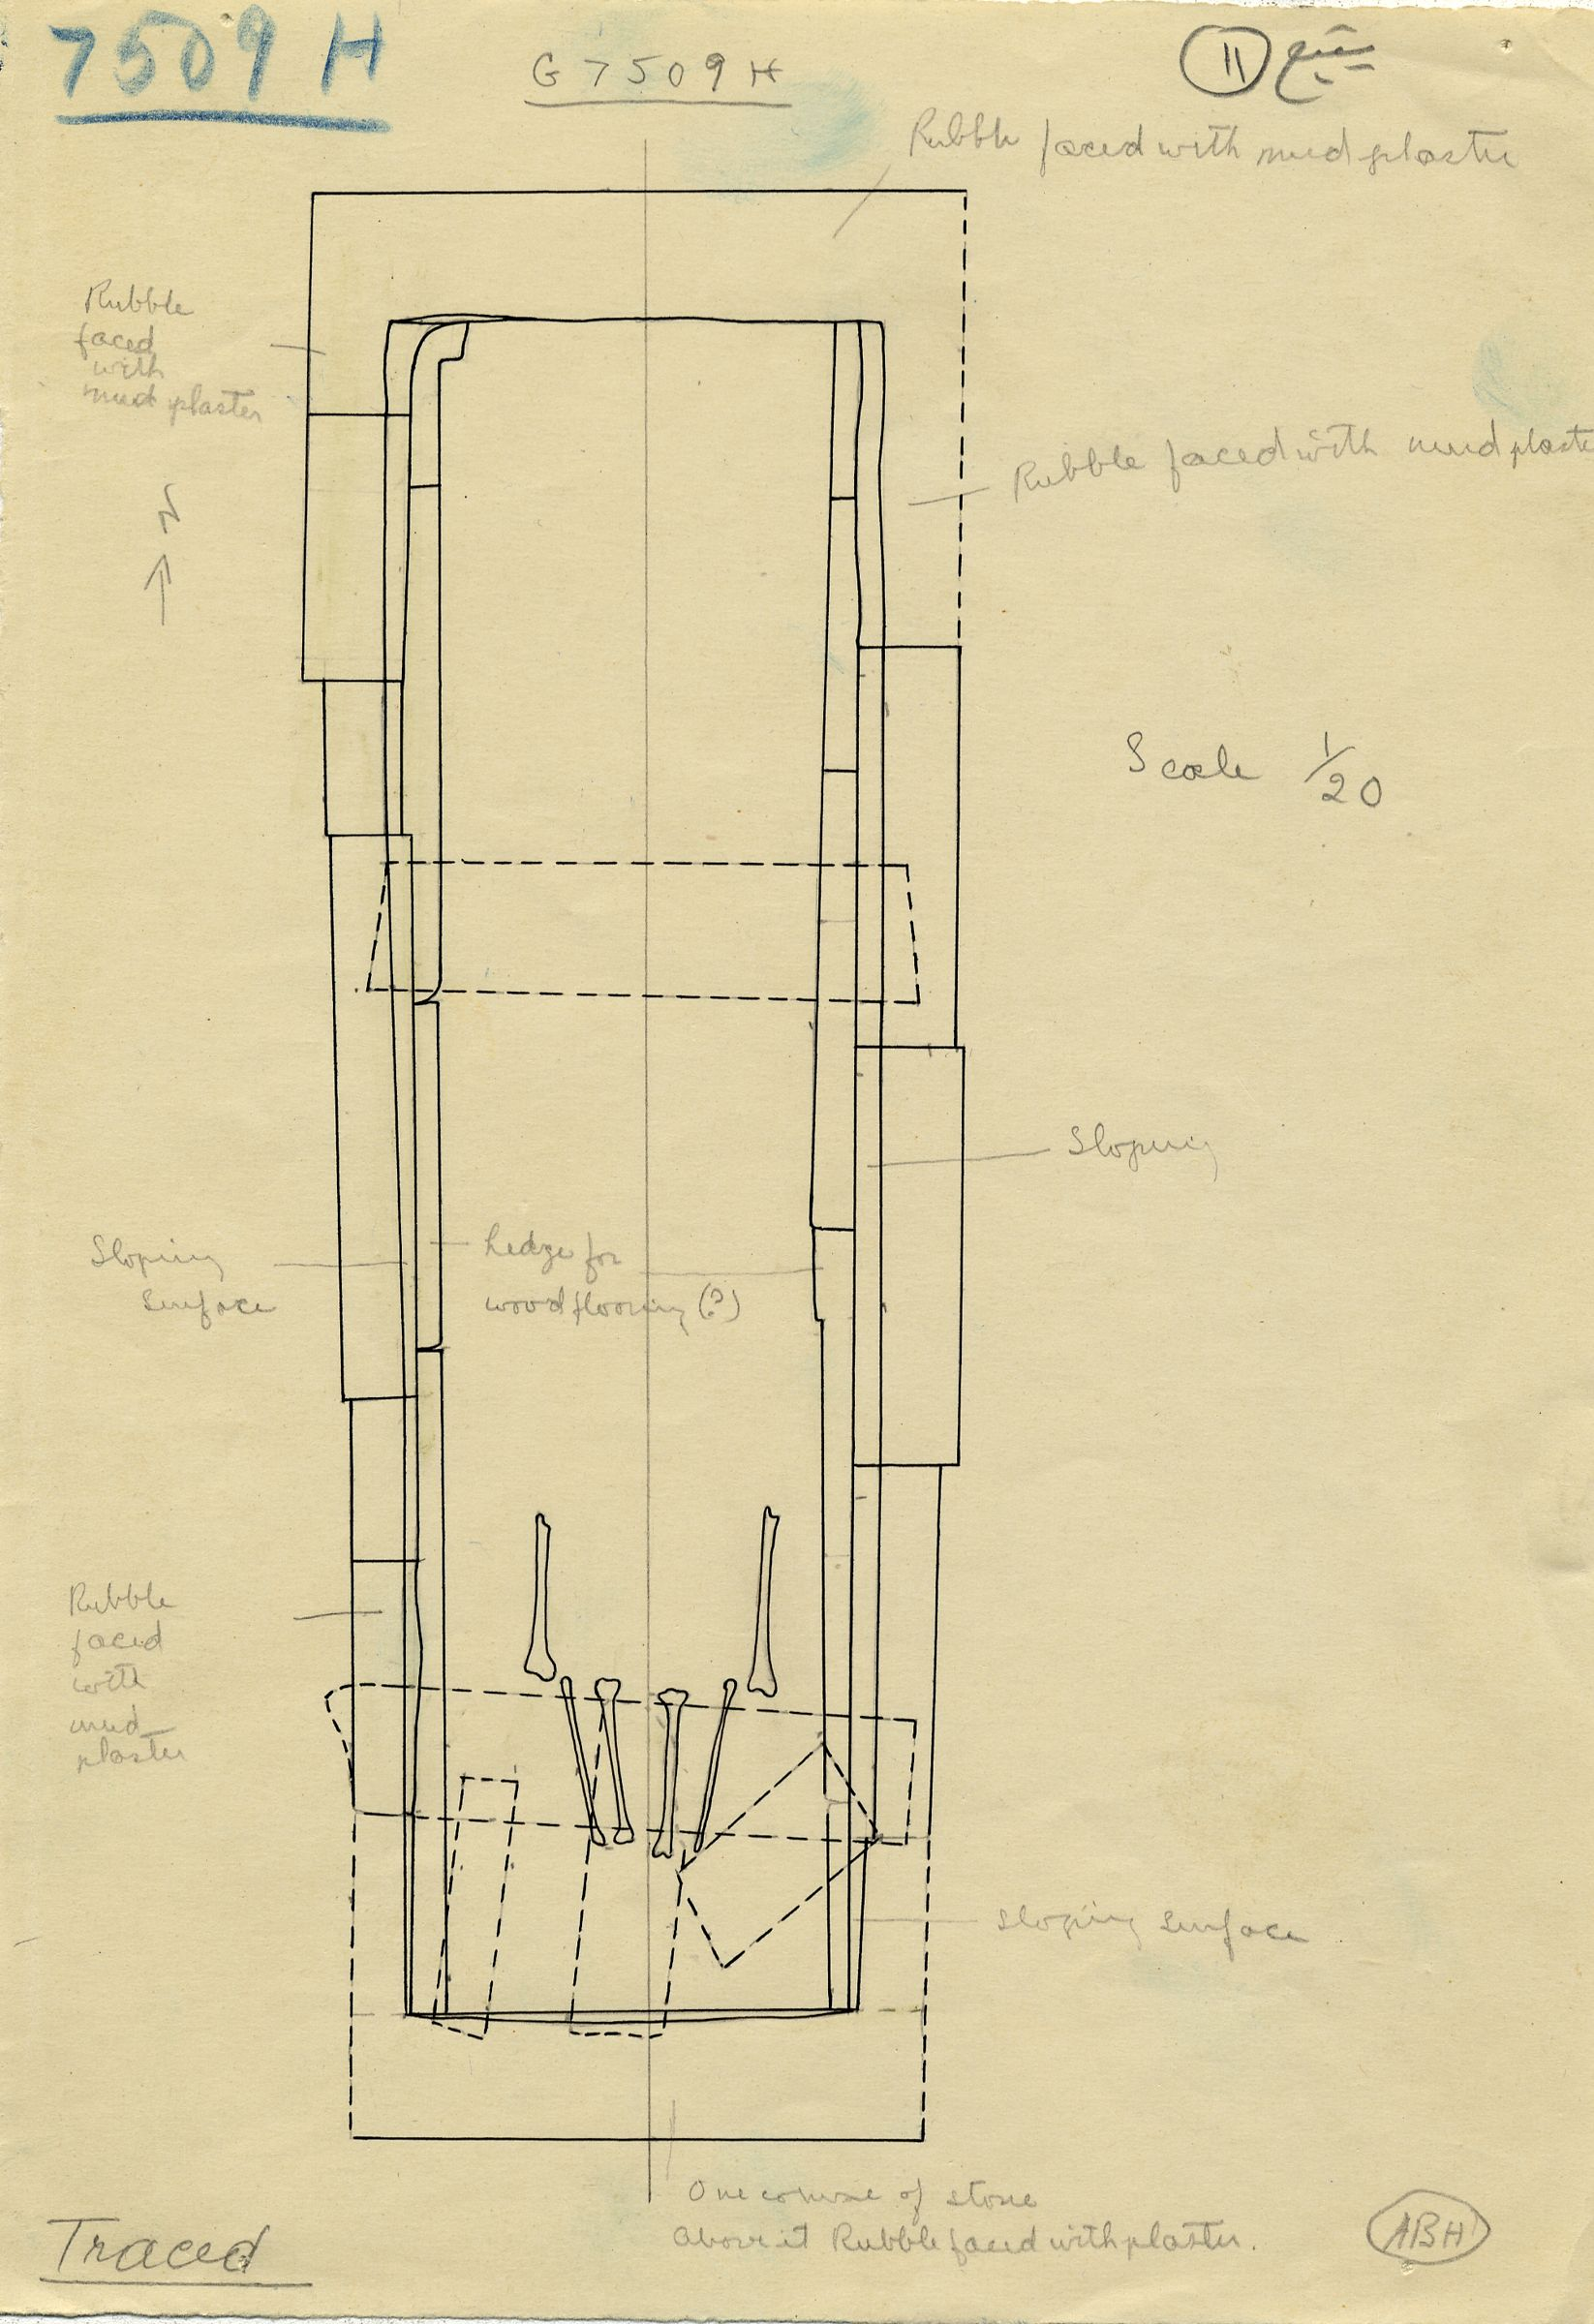 Maps and plans: G 7509, Shaft H